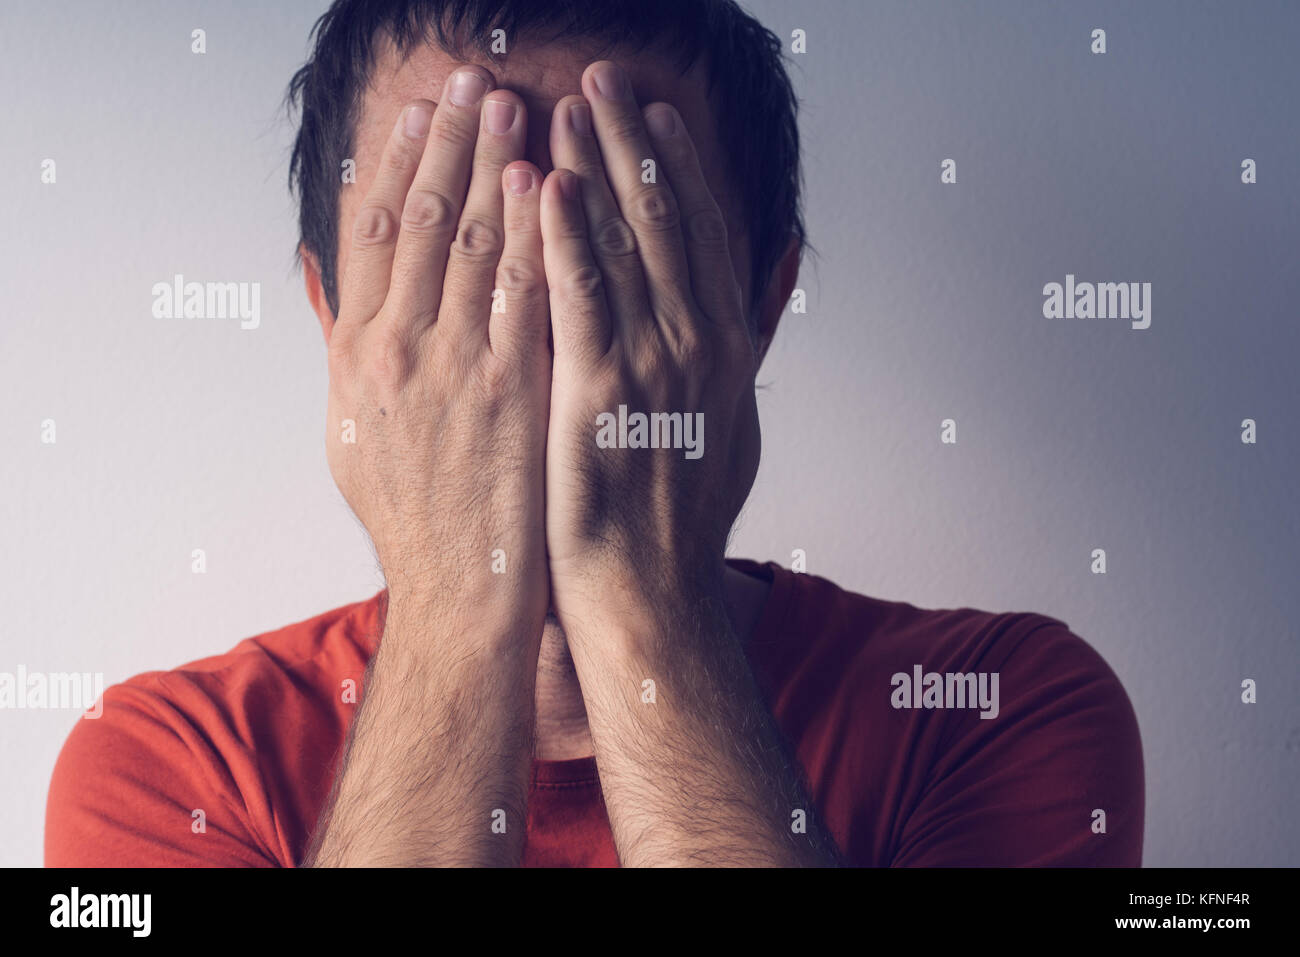 Ashamed man covering face. Shame, disgrace and embarrassment - Stock Image